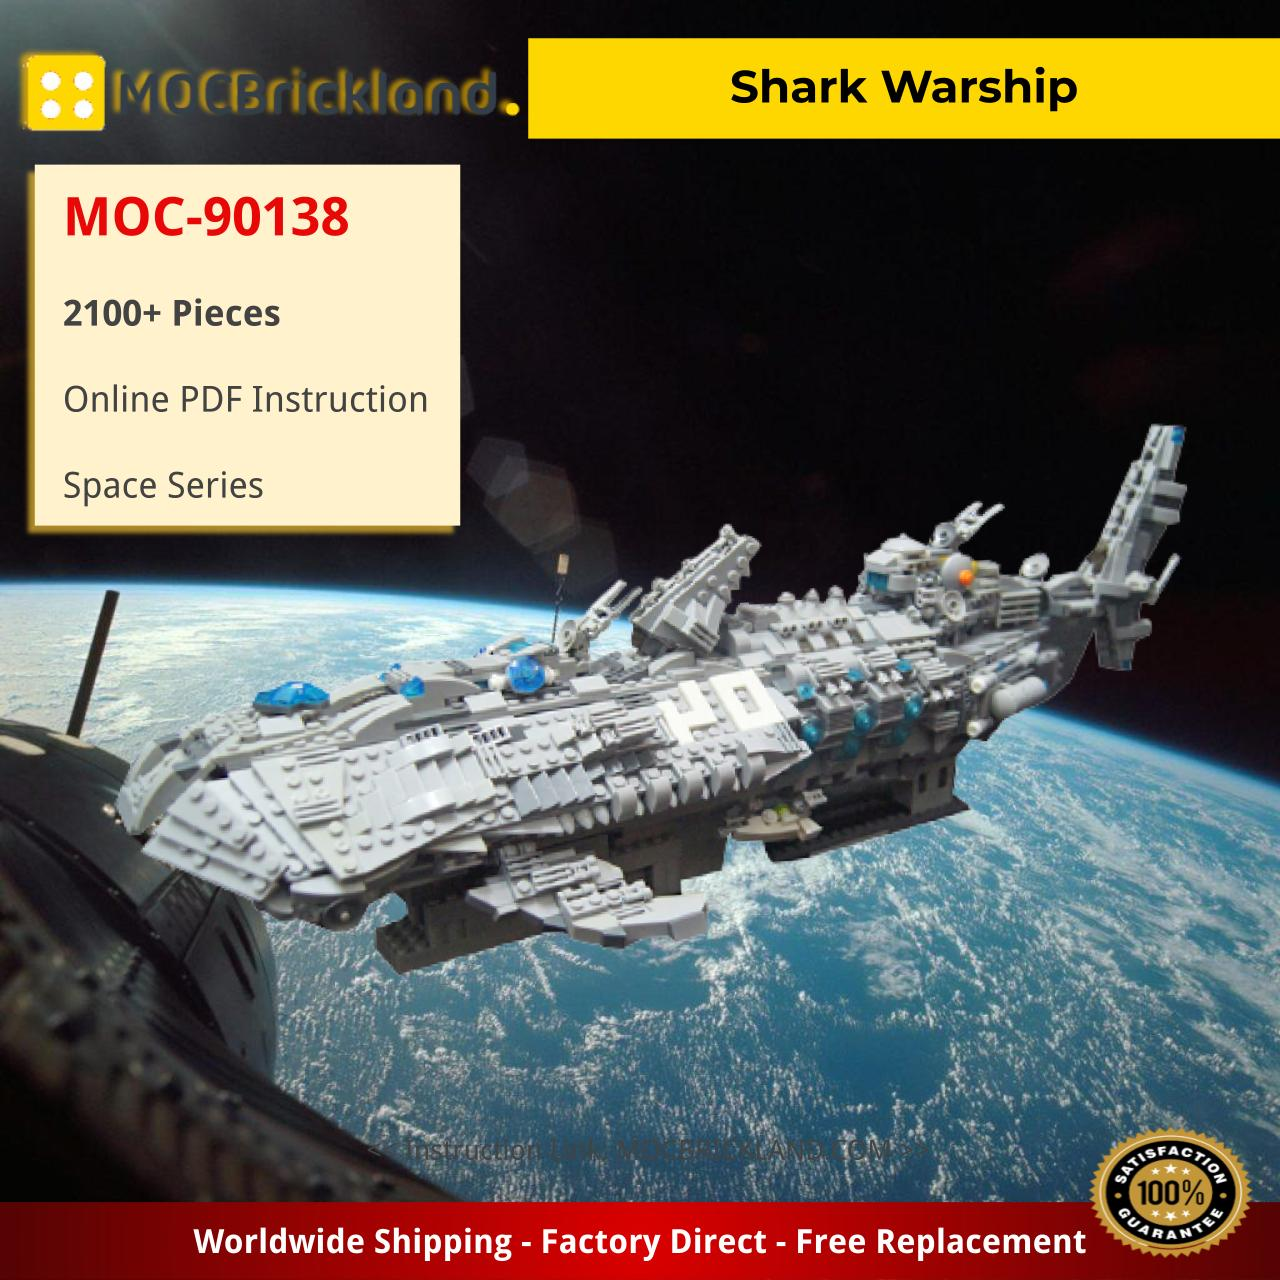 Shark Warship Space MOC-90138 with 2100 pieces